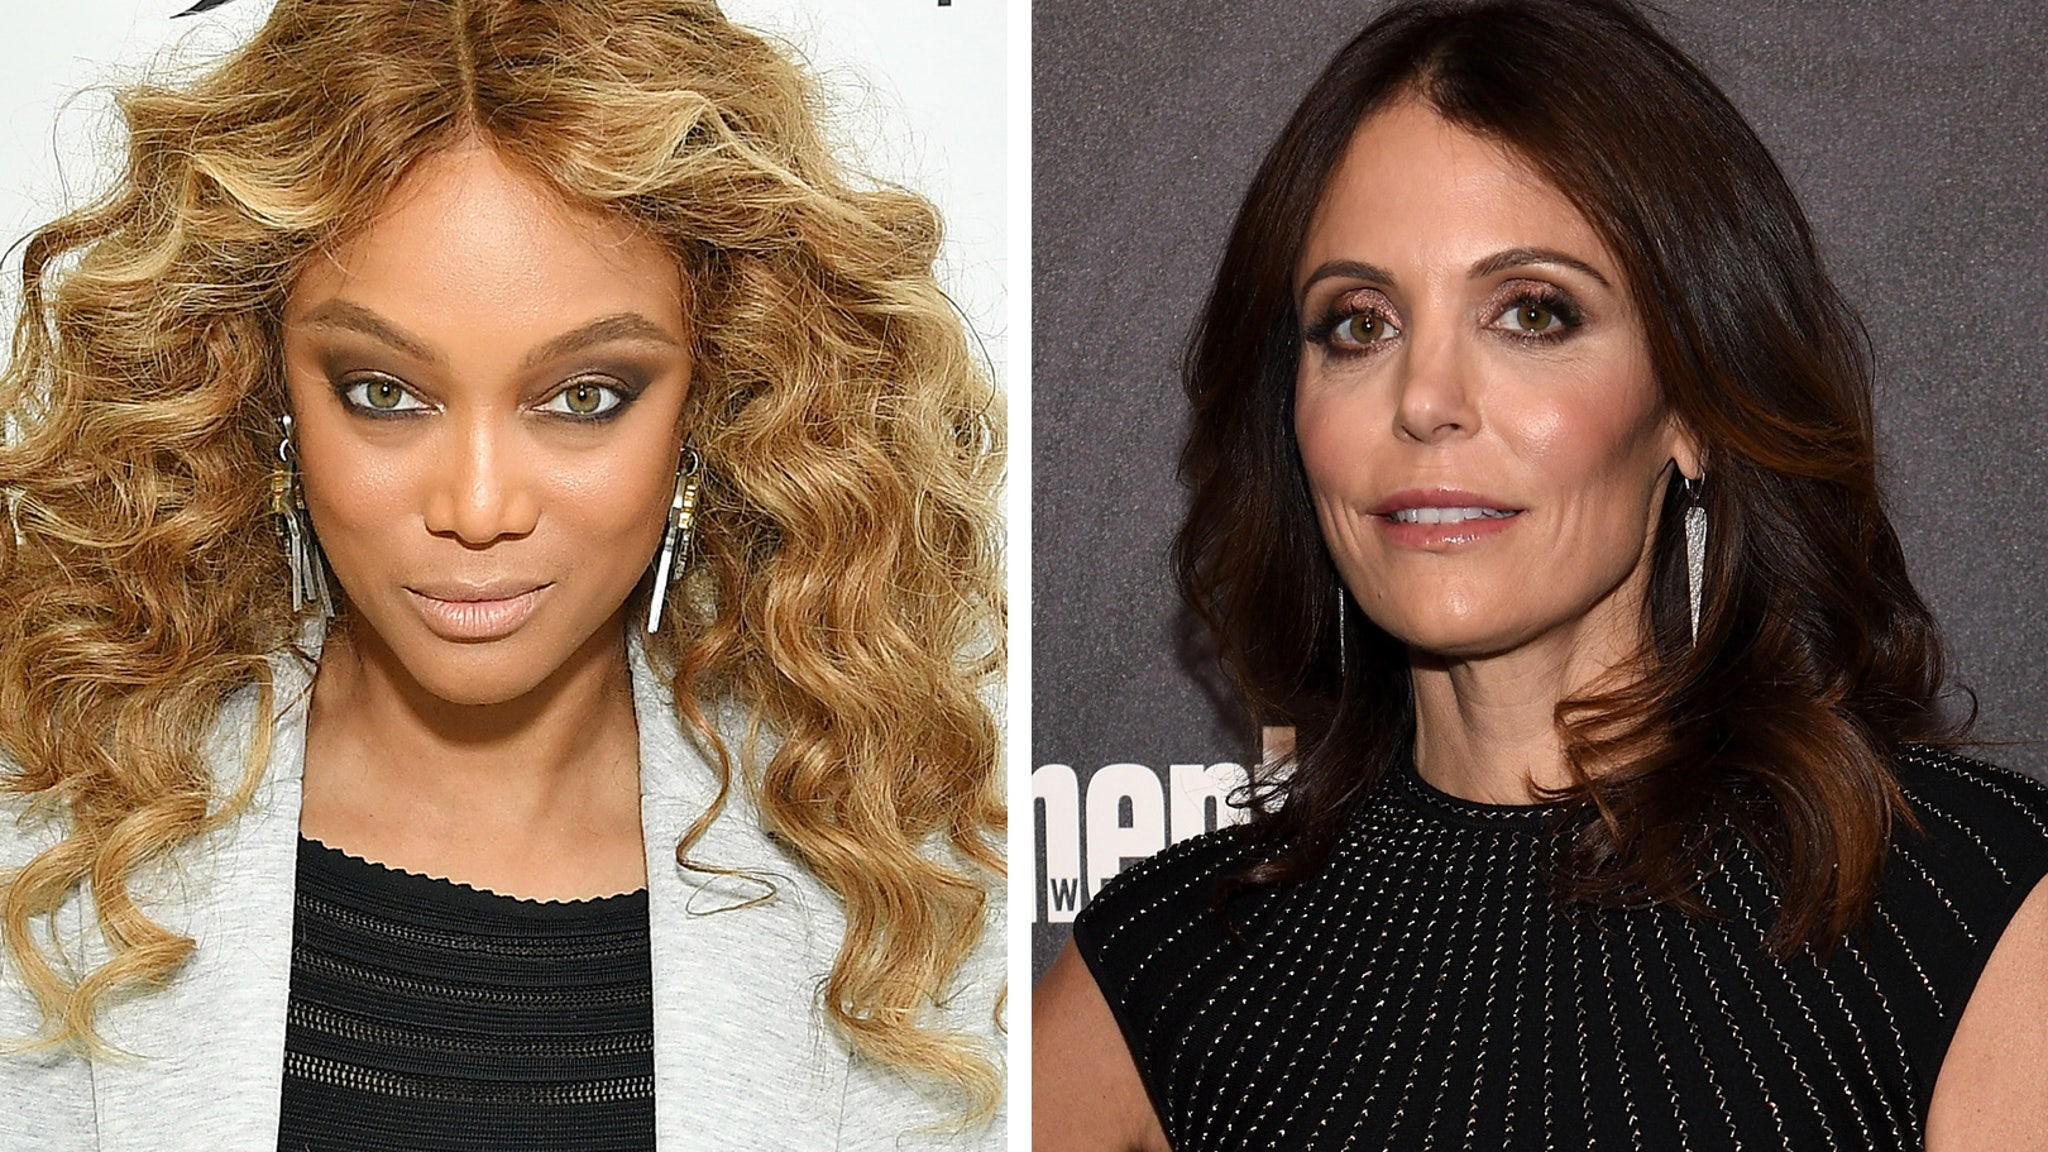 Tyra Banks Responds to Bethenny Frankel's Claim She Banned Housewives From DWTS